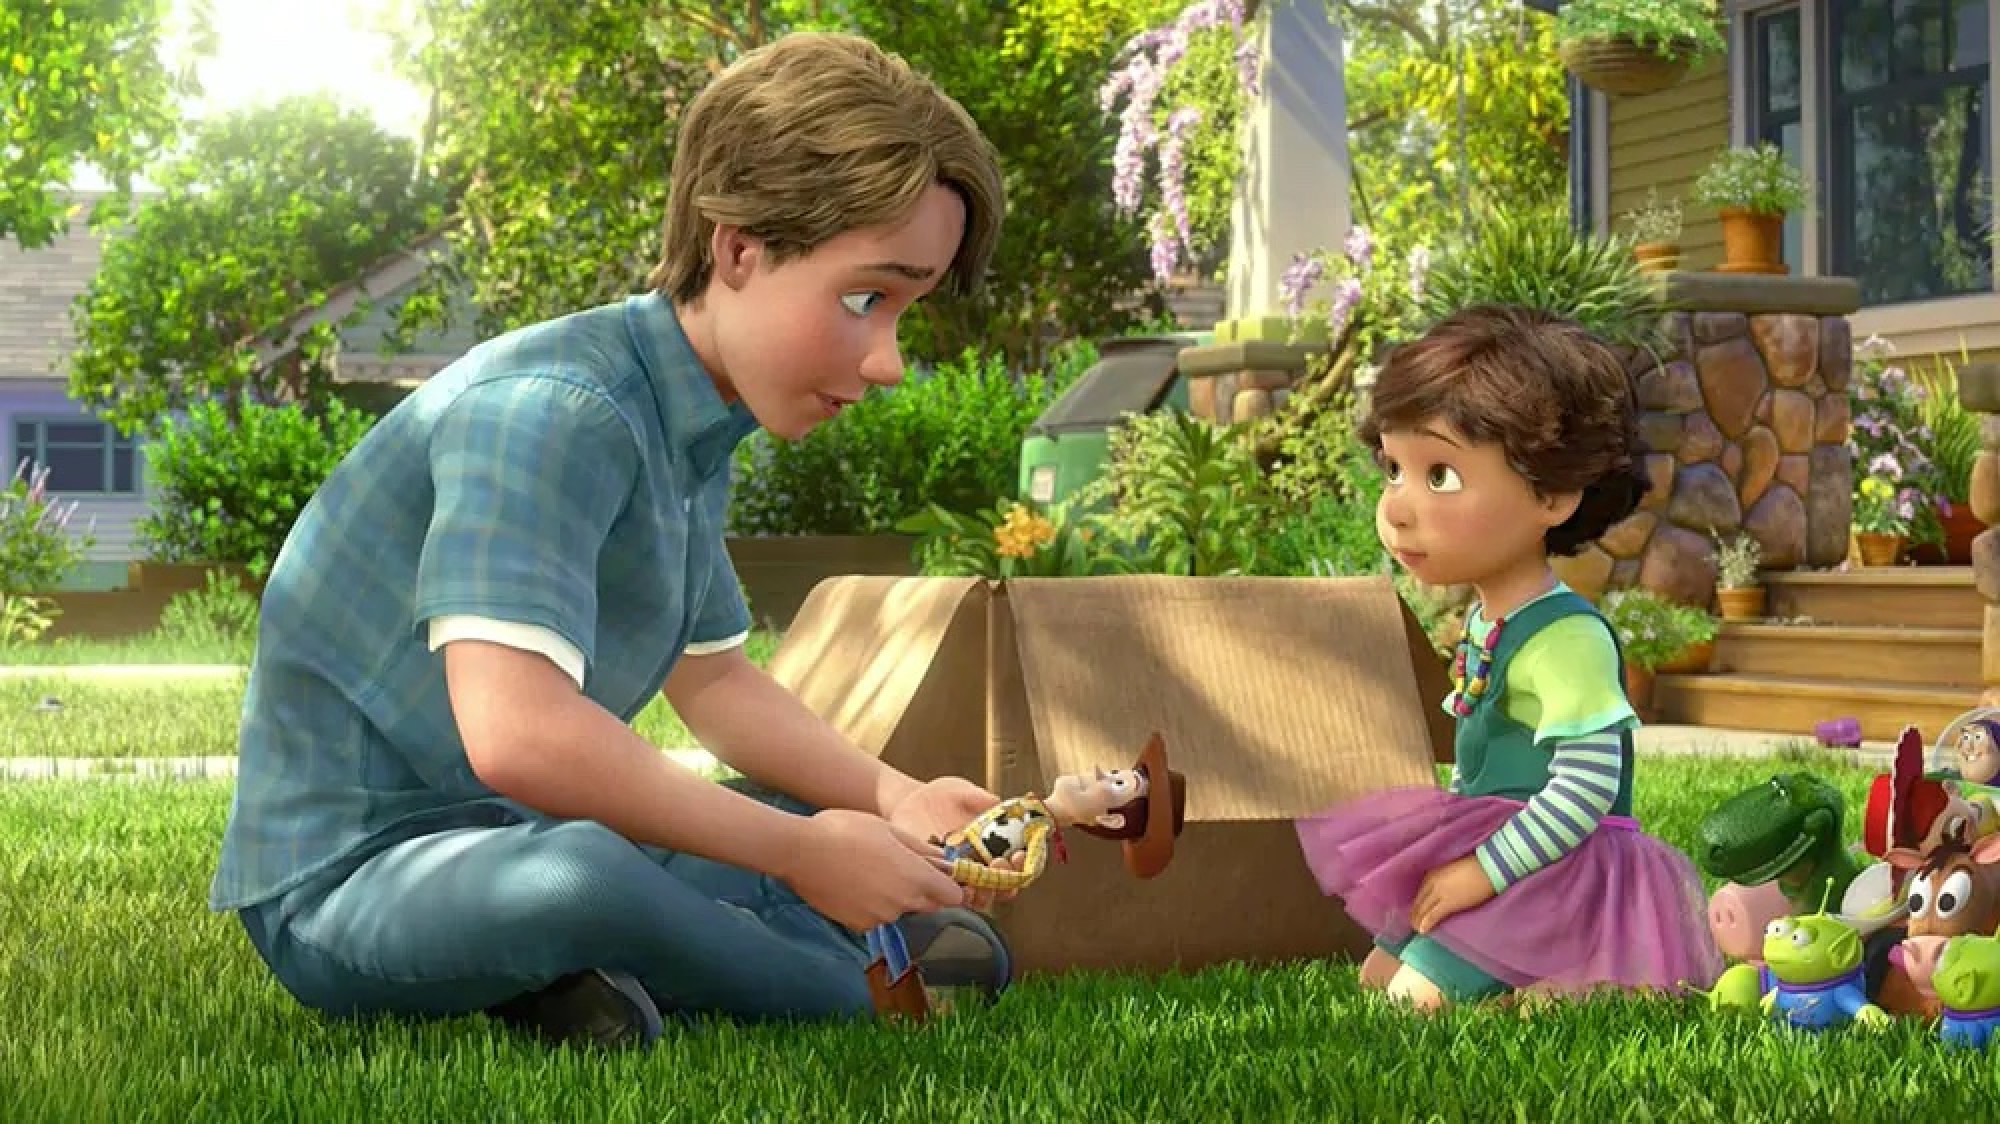 The thing that makes Woody special, is he'll never give up on you… ever. He'll be there for you, no matter what.